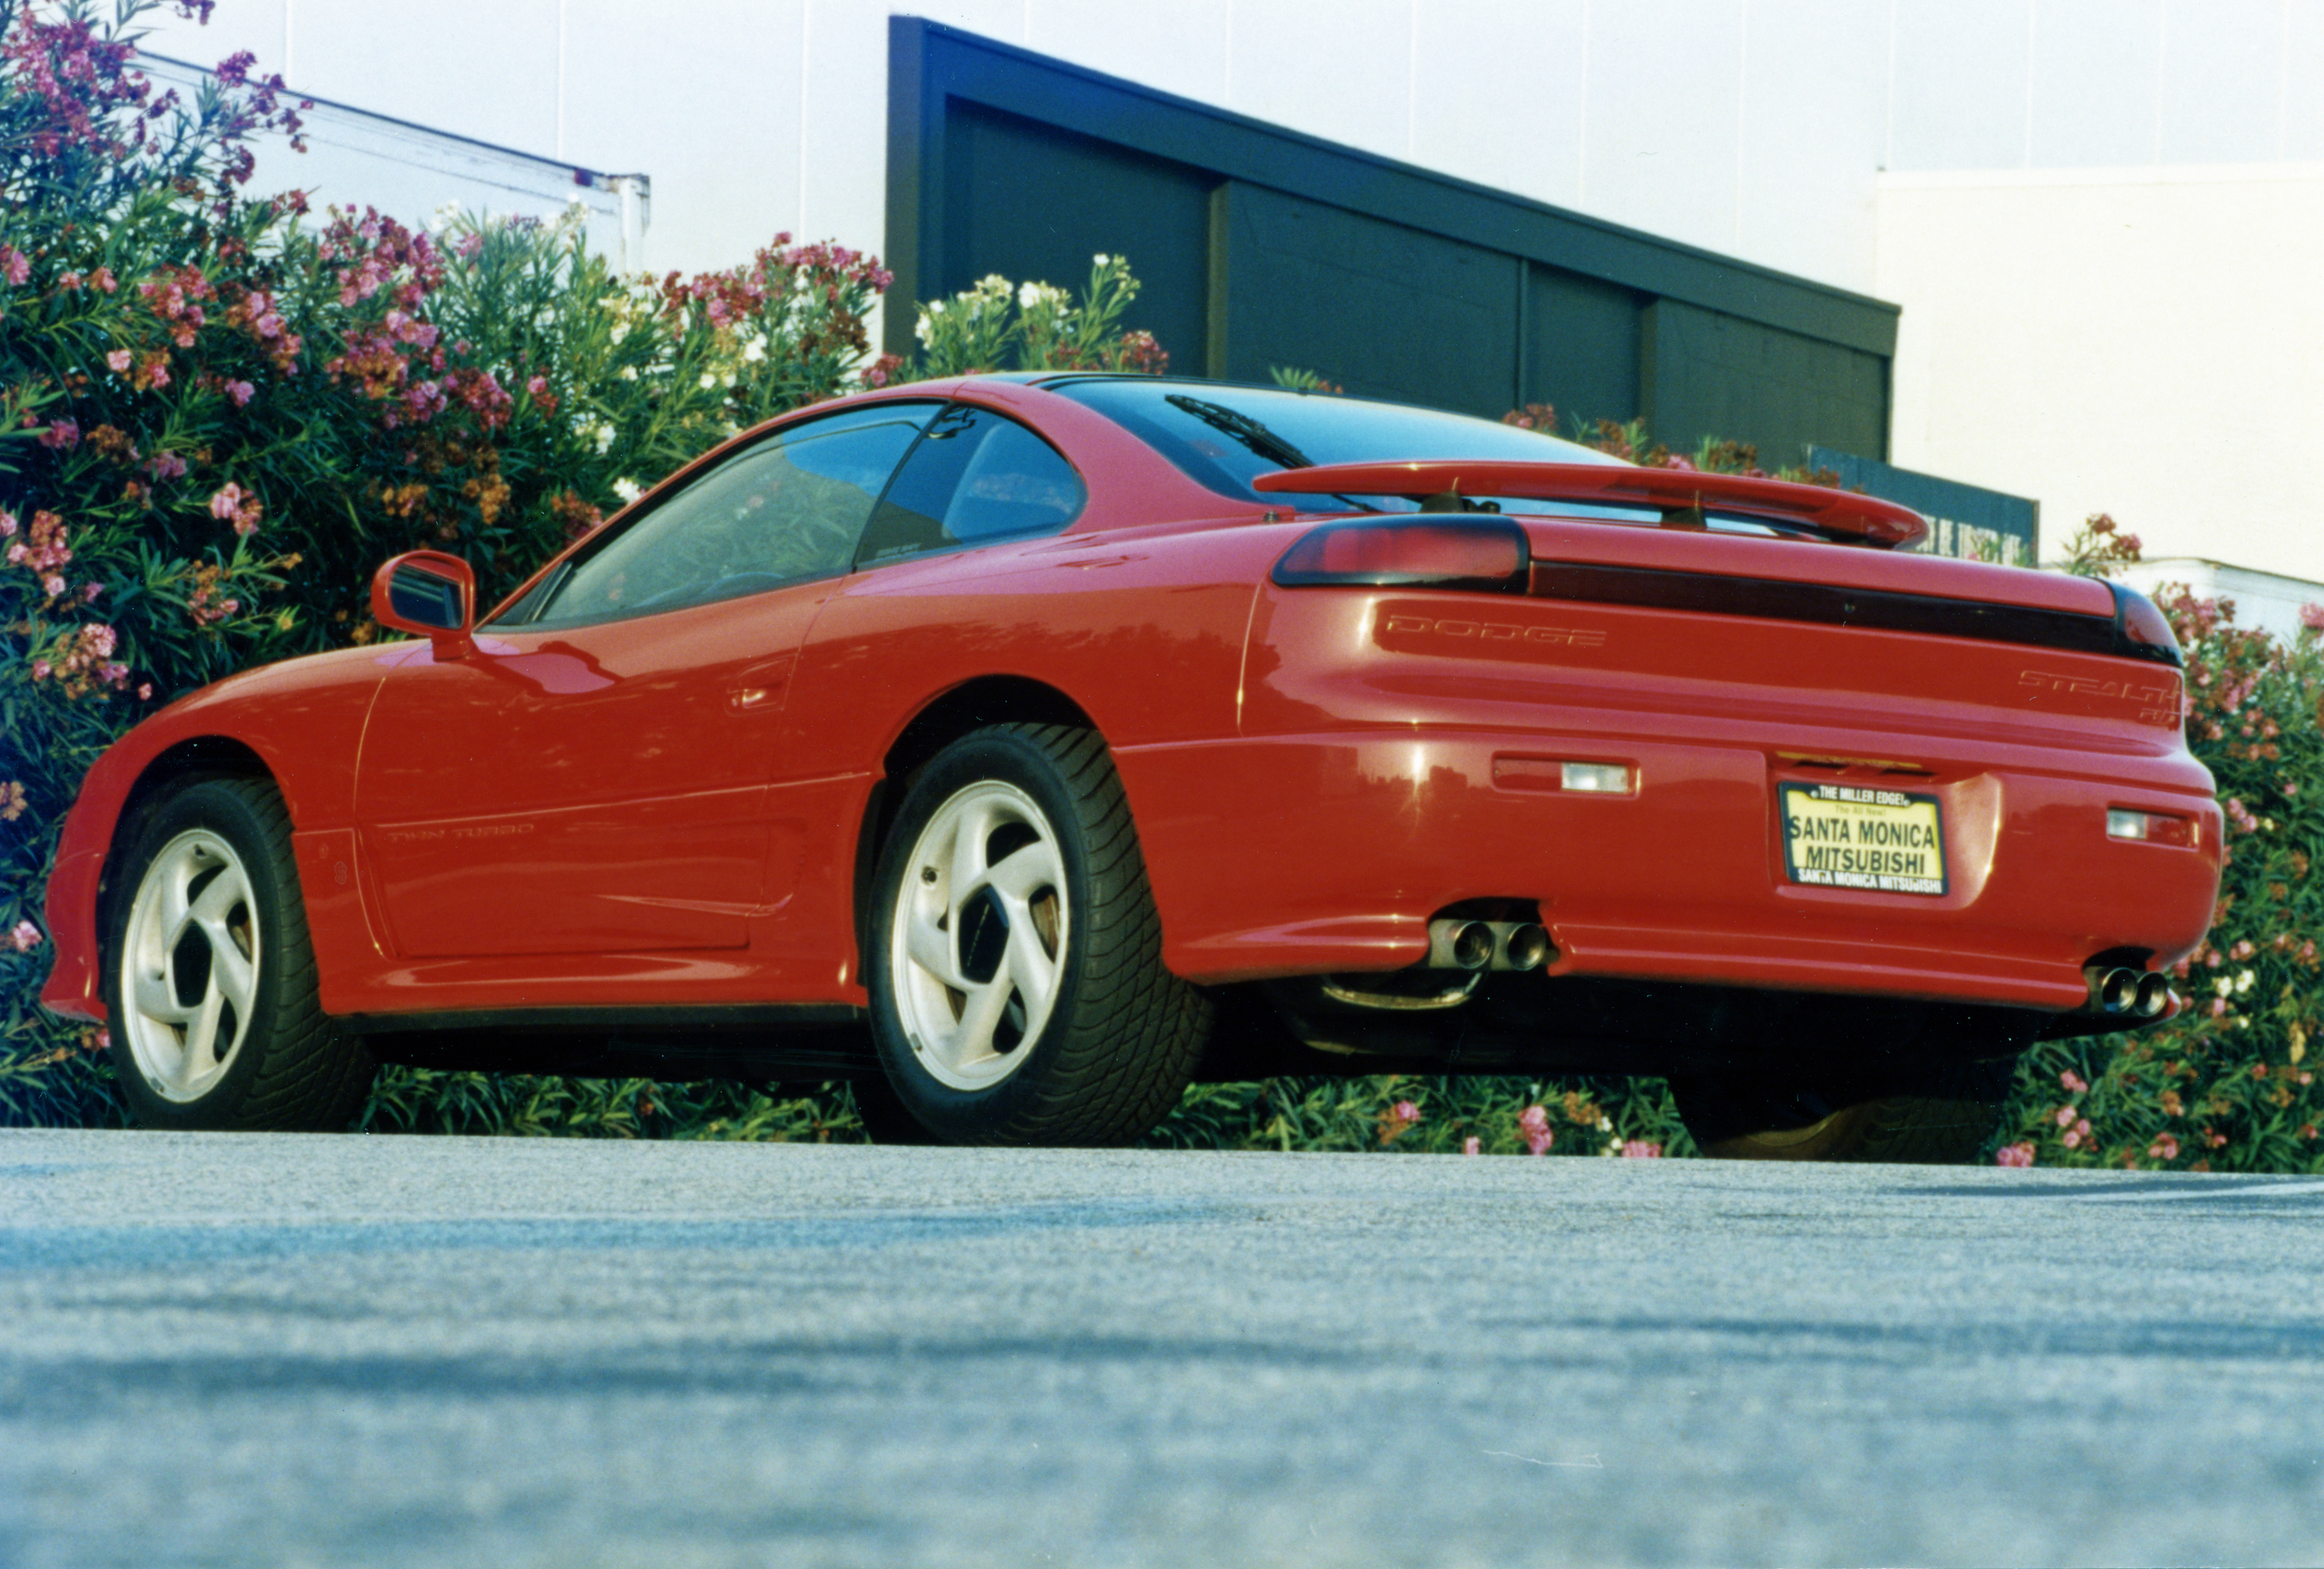 1991 Dodge Stealth RT Twin Turob Rear